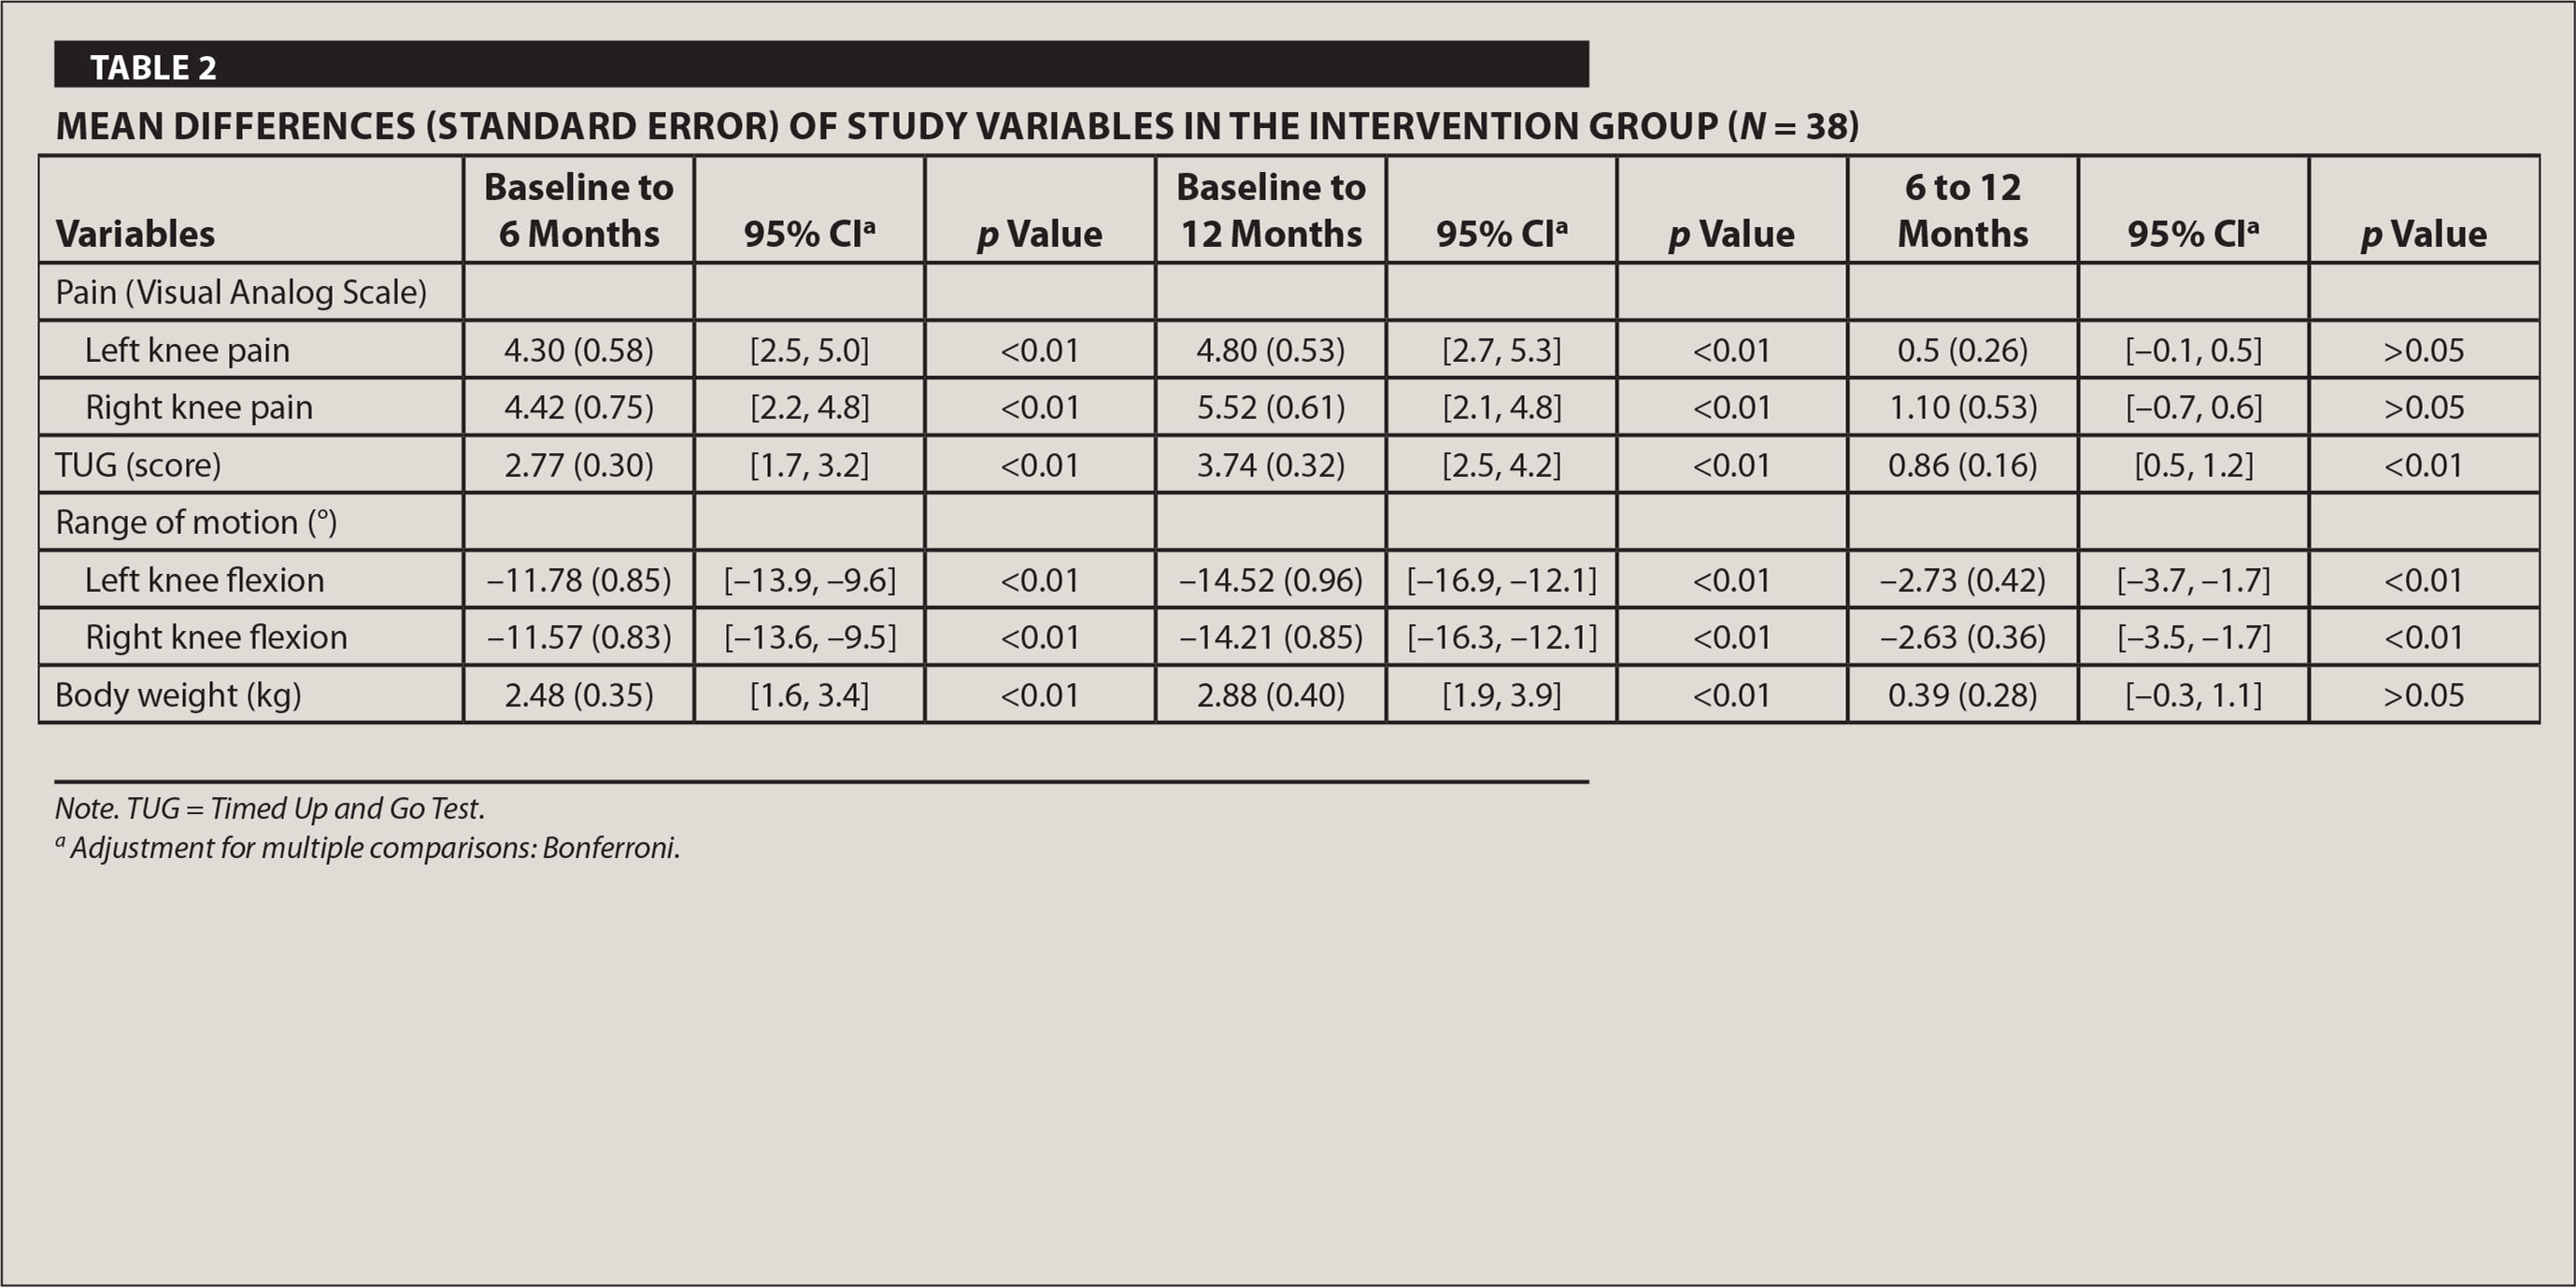 Mean Differences (Standard Error) of Study Variables in the Intervention Group (N = 38)